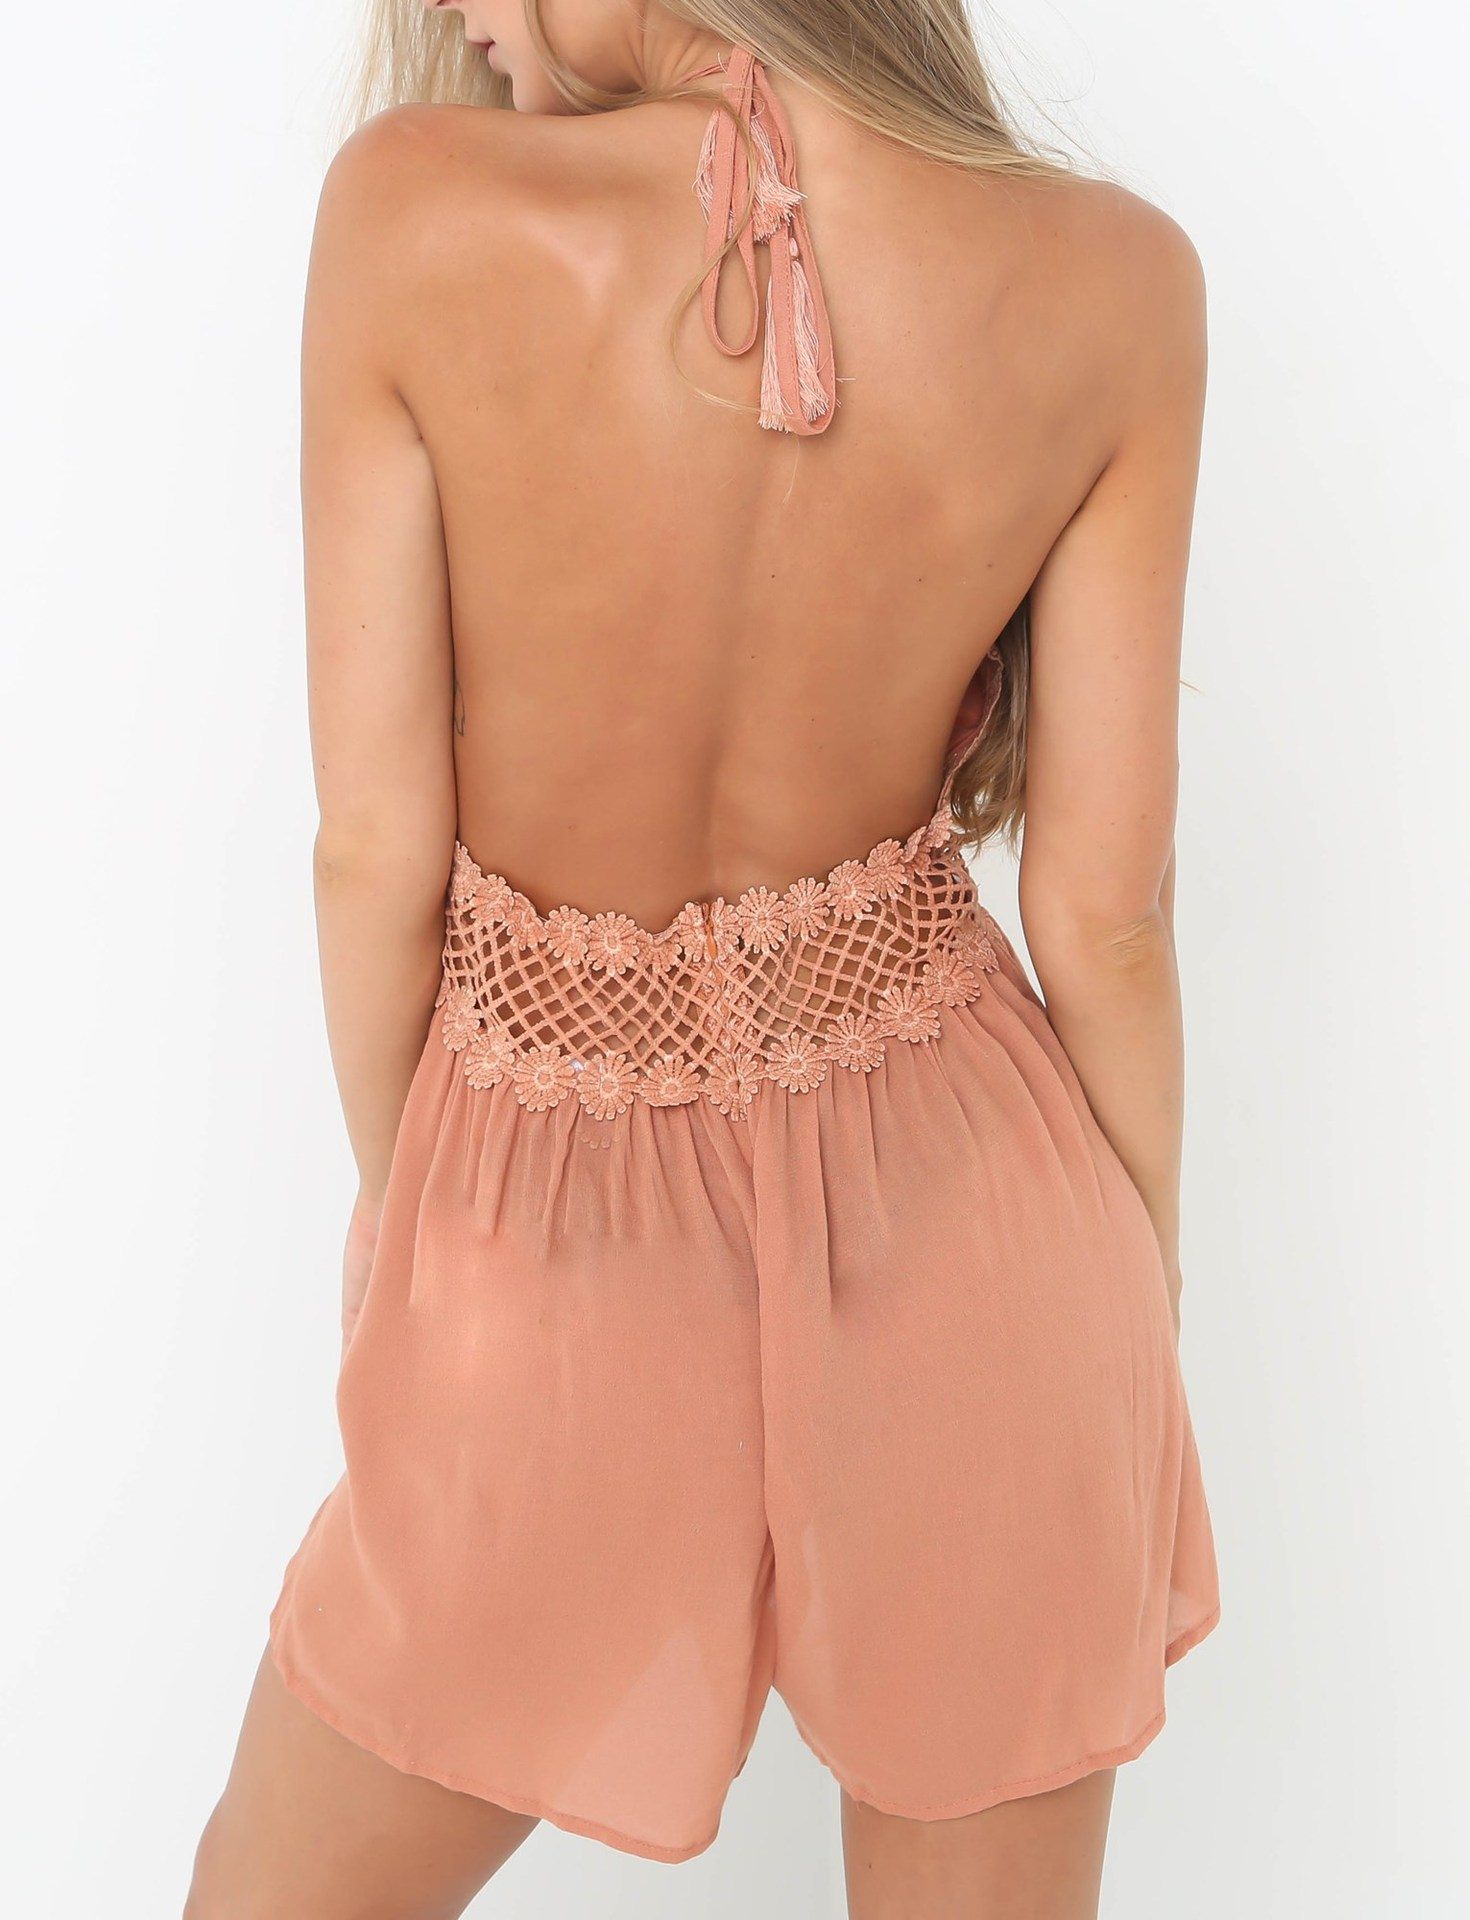 JUST-PEACHY-PLAYSUIT-1258APR_1